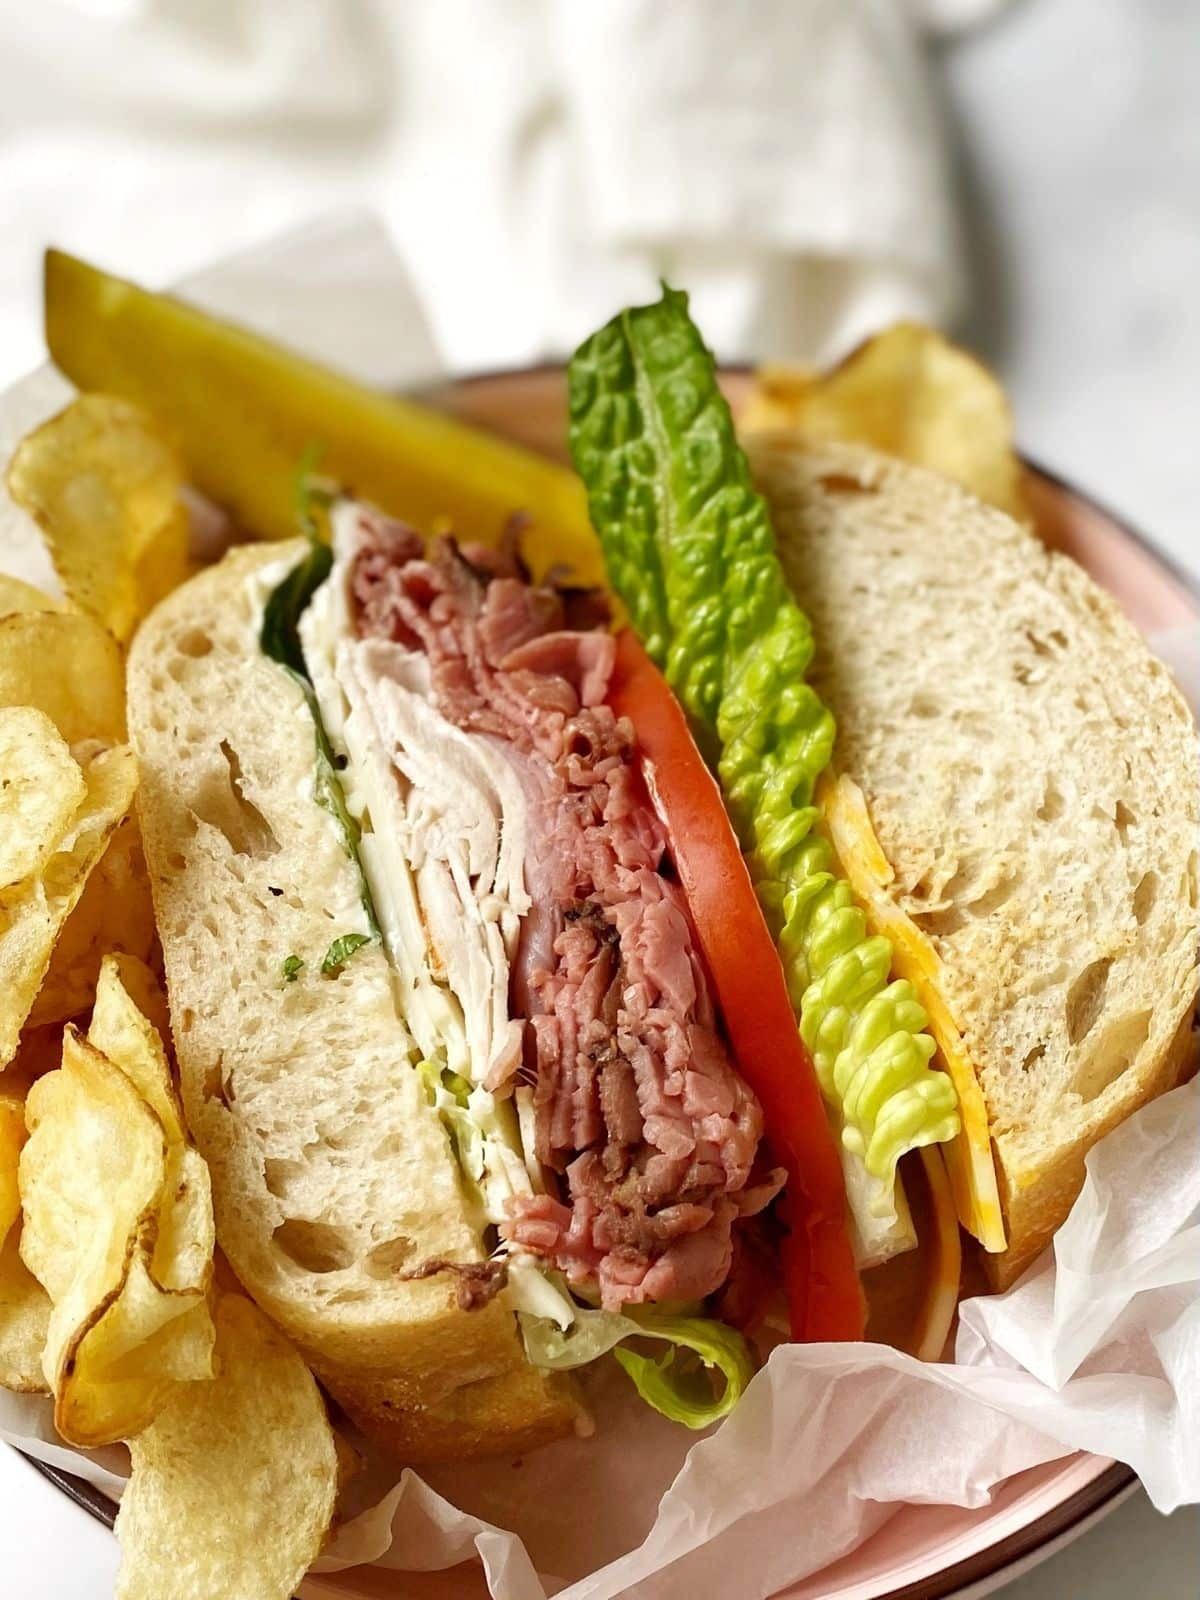 sandwich in a dish with chips and pickle